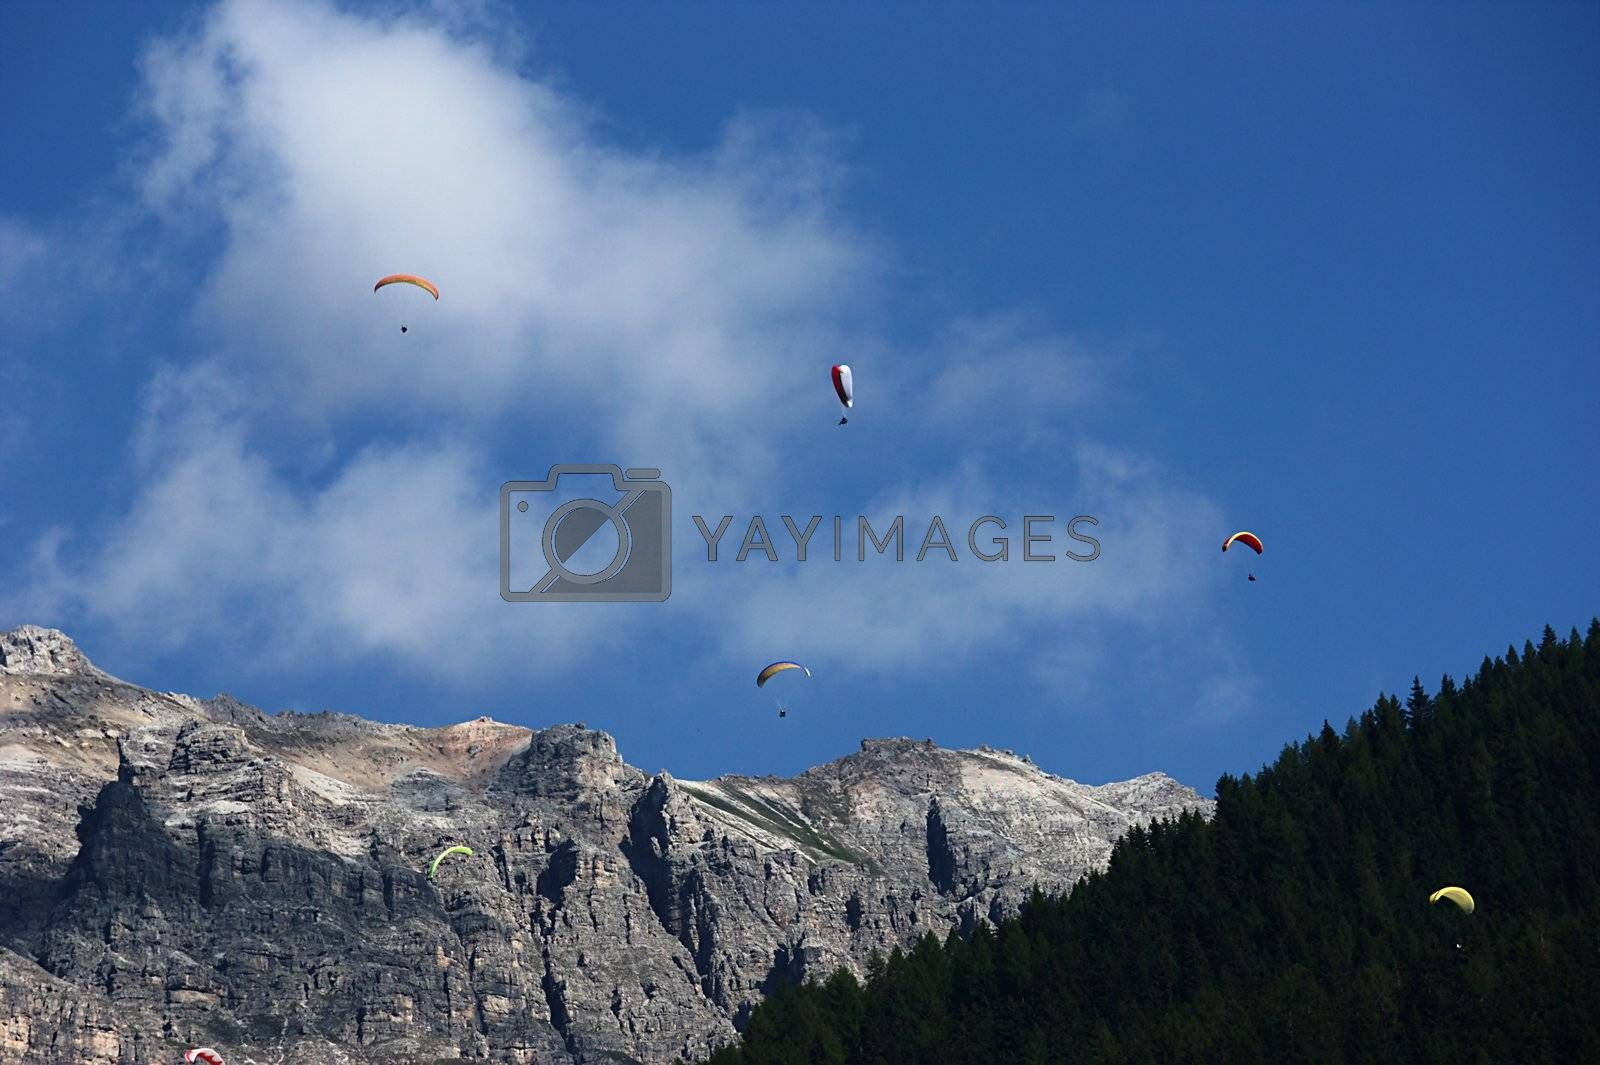 Royalty free image of Paragliding in the Alps by cflux